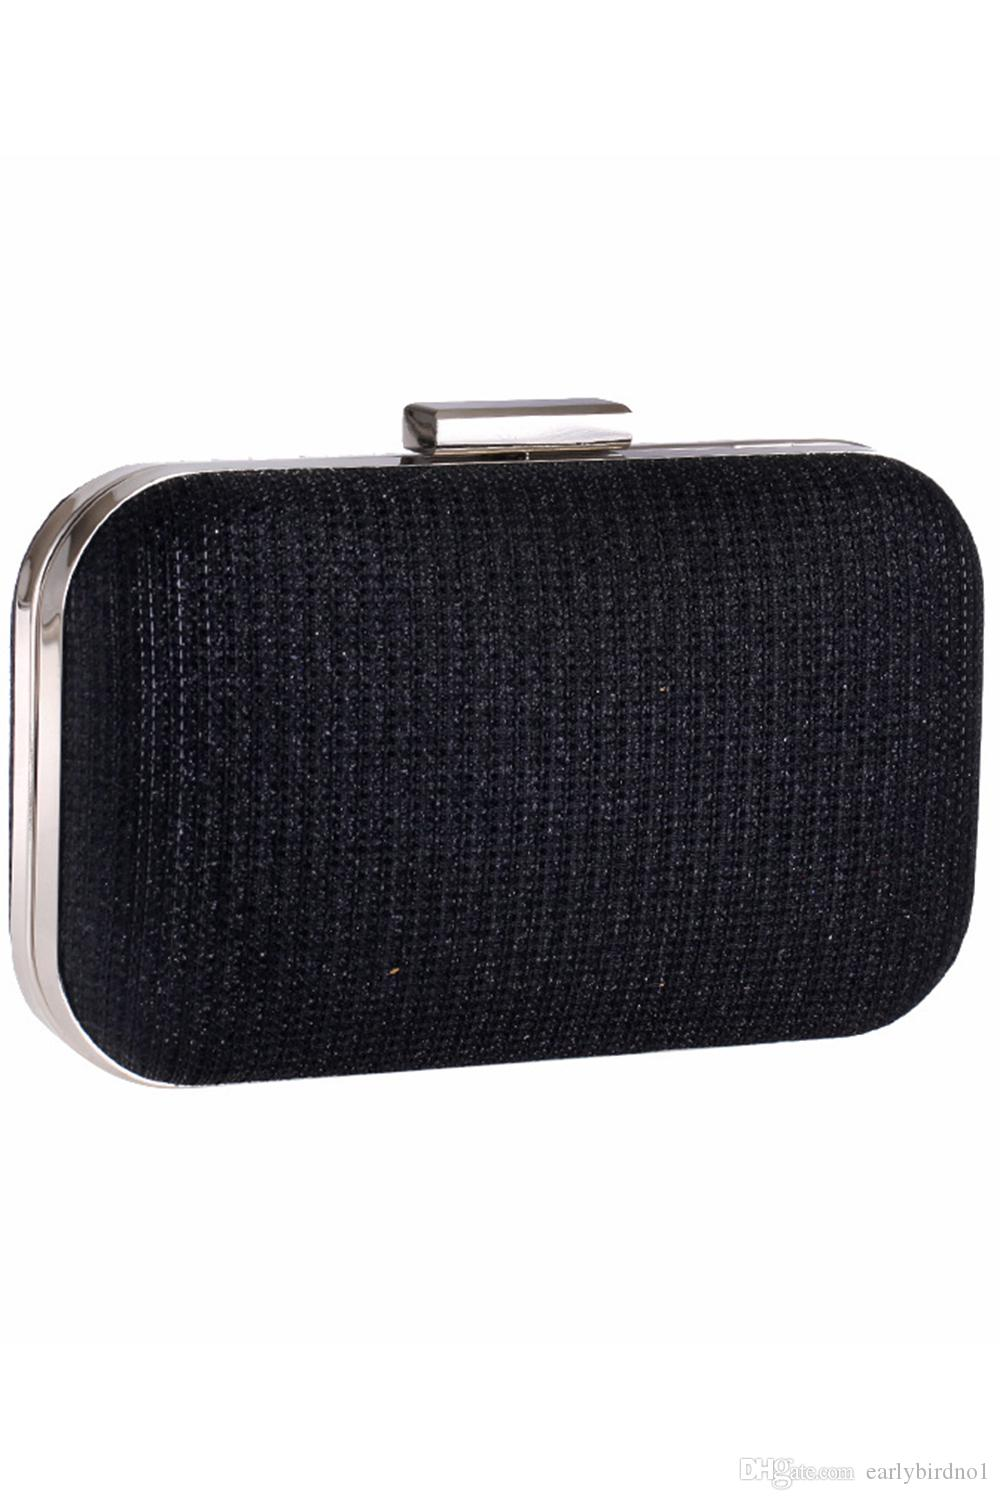 Shiny Glitter Silver Black Bridal Hand Bags Clutch Bags For Formal Party Occasions with Chains Ladies Minaudiere Bags CPA956